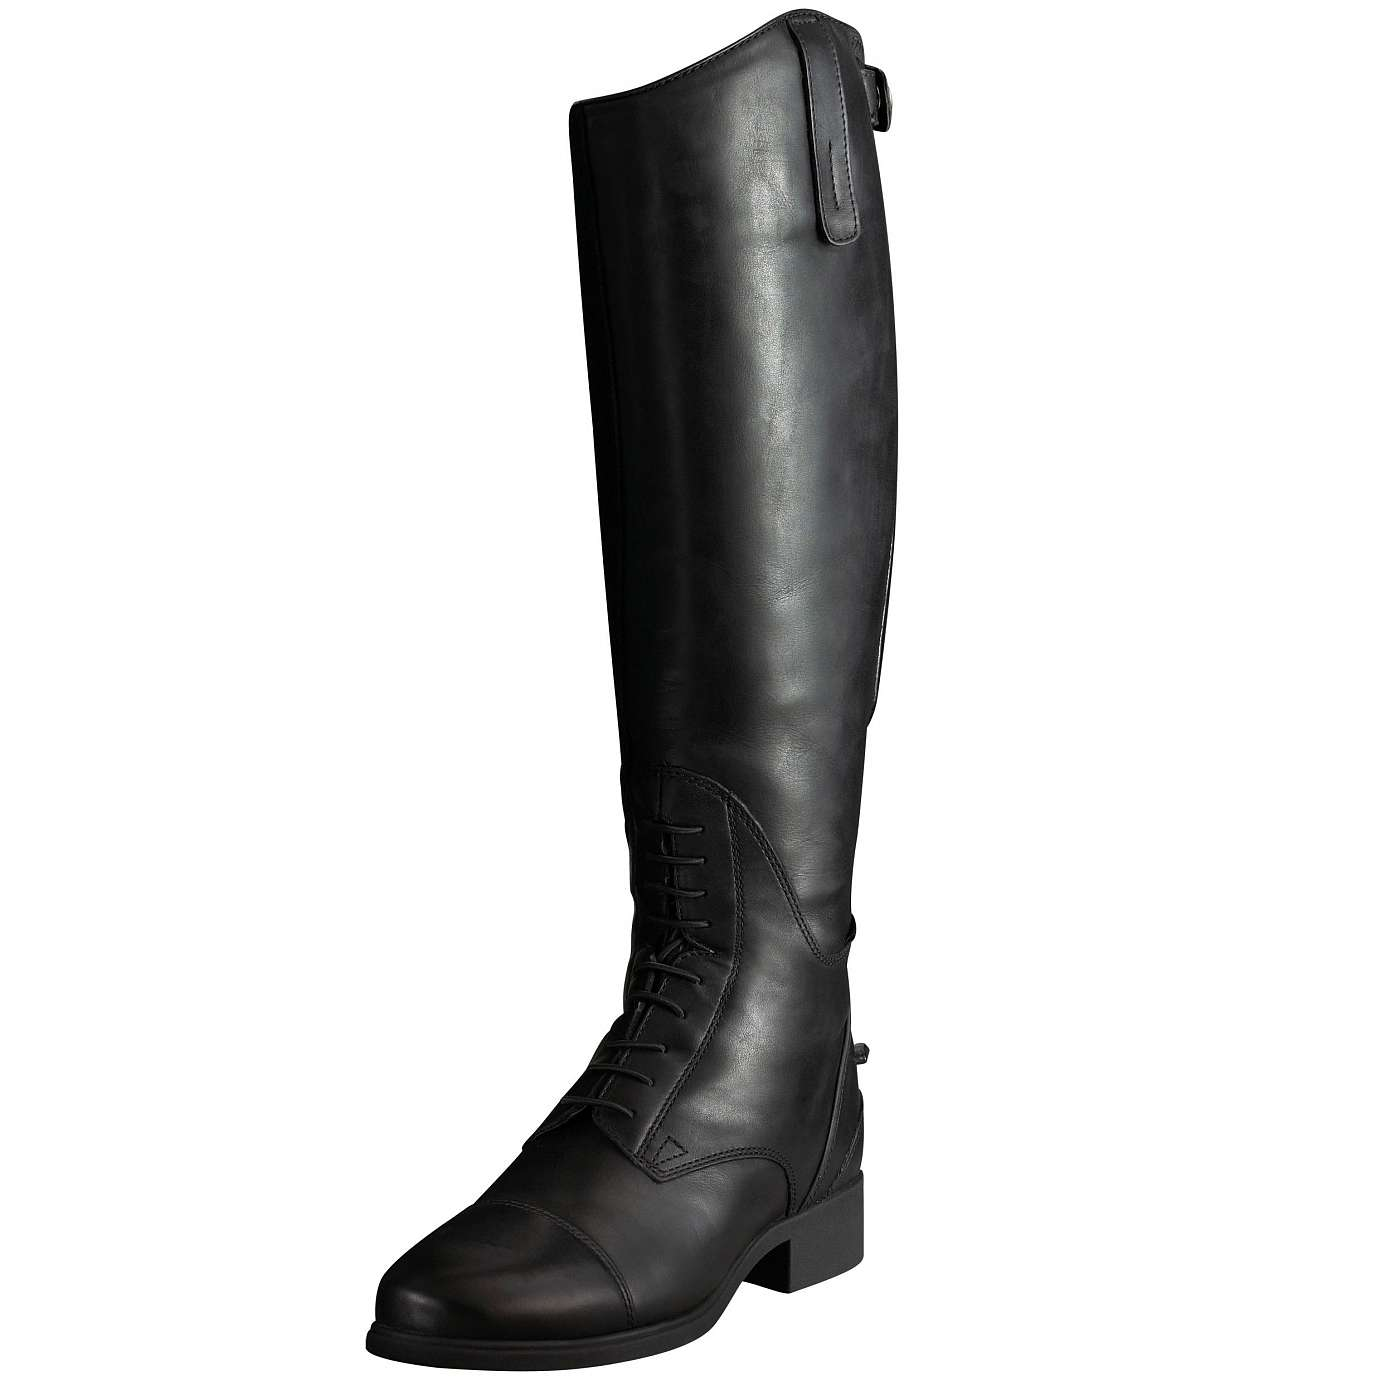 ARIAT BROMONT TALL H20 LADIES FULL